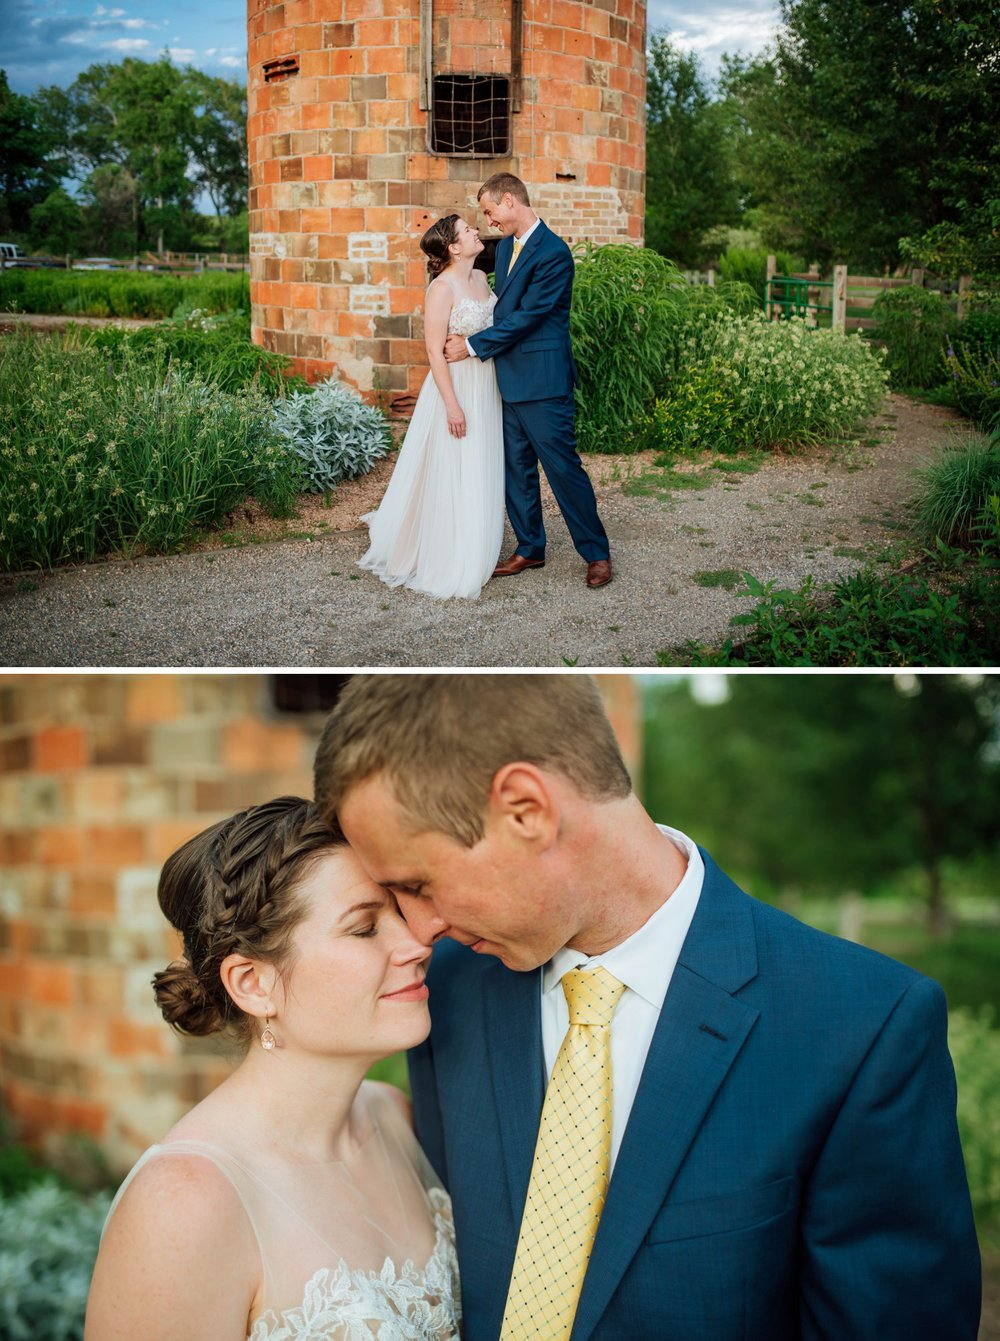 These photos are so sweet with the bride and the groom standing in front of the brick tower at the Denver Botanic Gardens in Chatfield. Photo by Maddie Mae Photography